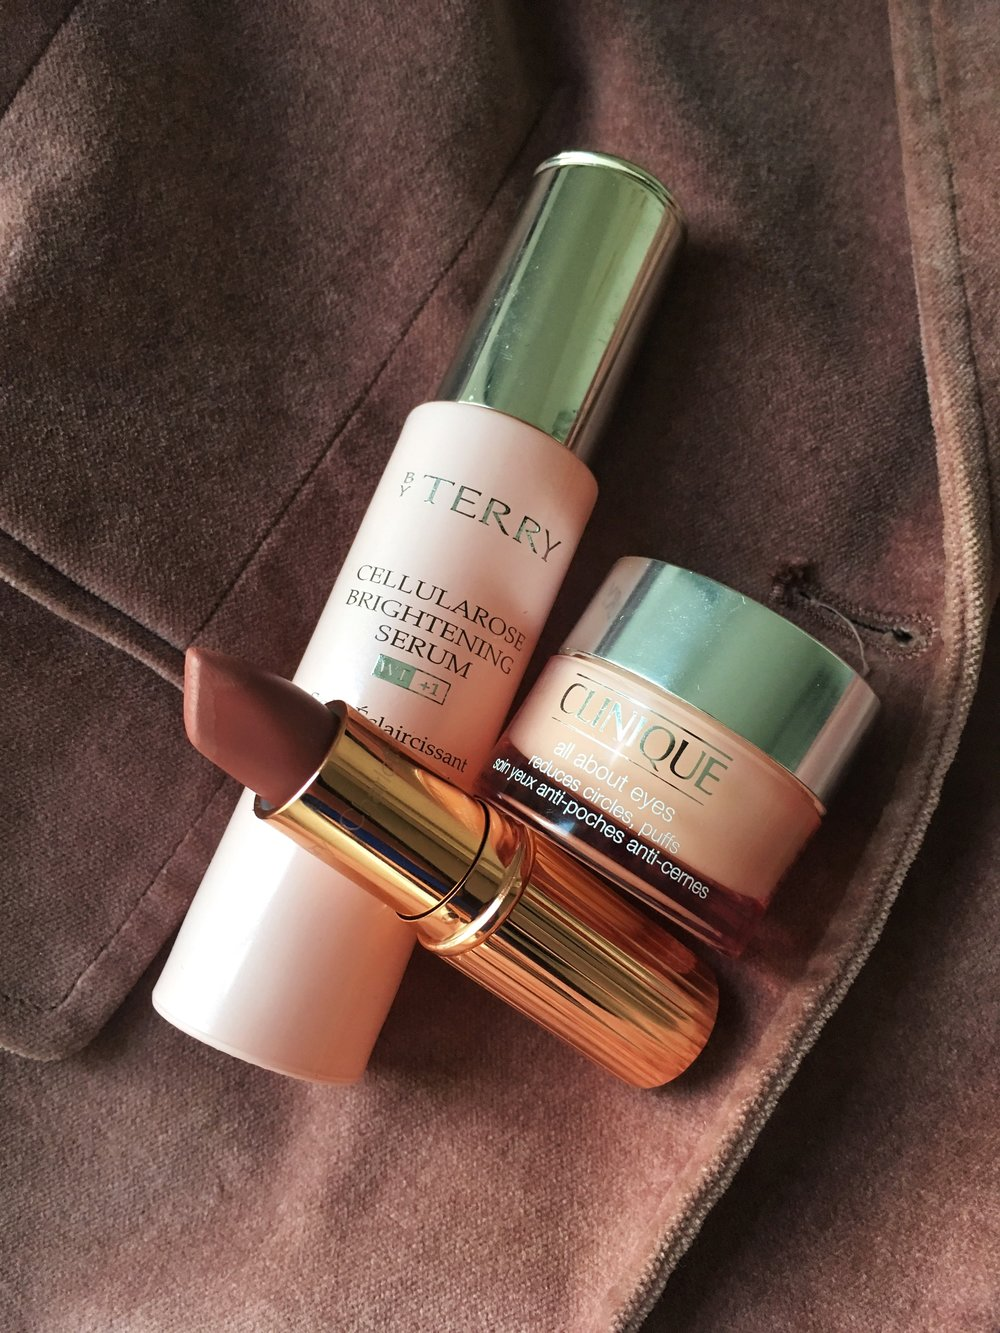 Pink Beauty Products, By Terry, Clinique, Charlotte Tilberry   3 Reasons Why Millenial Pink Is Here to Stay- Cady Quotidienne.jpg